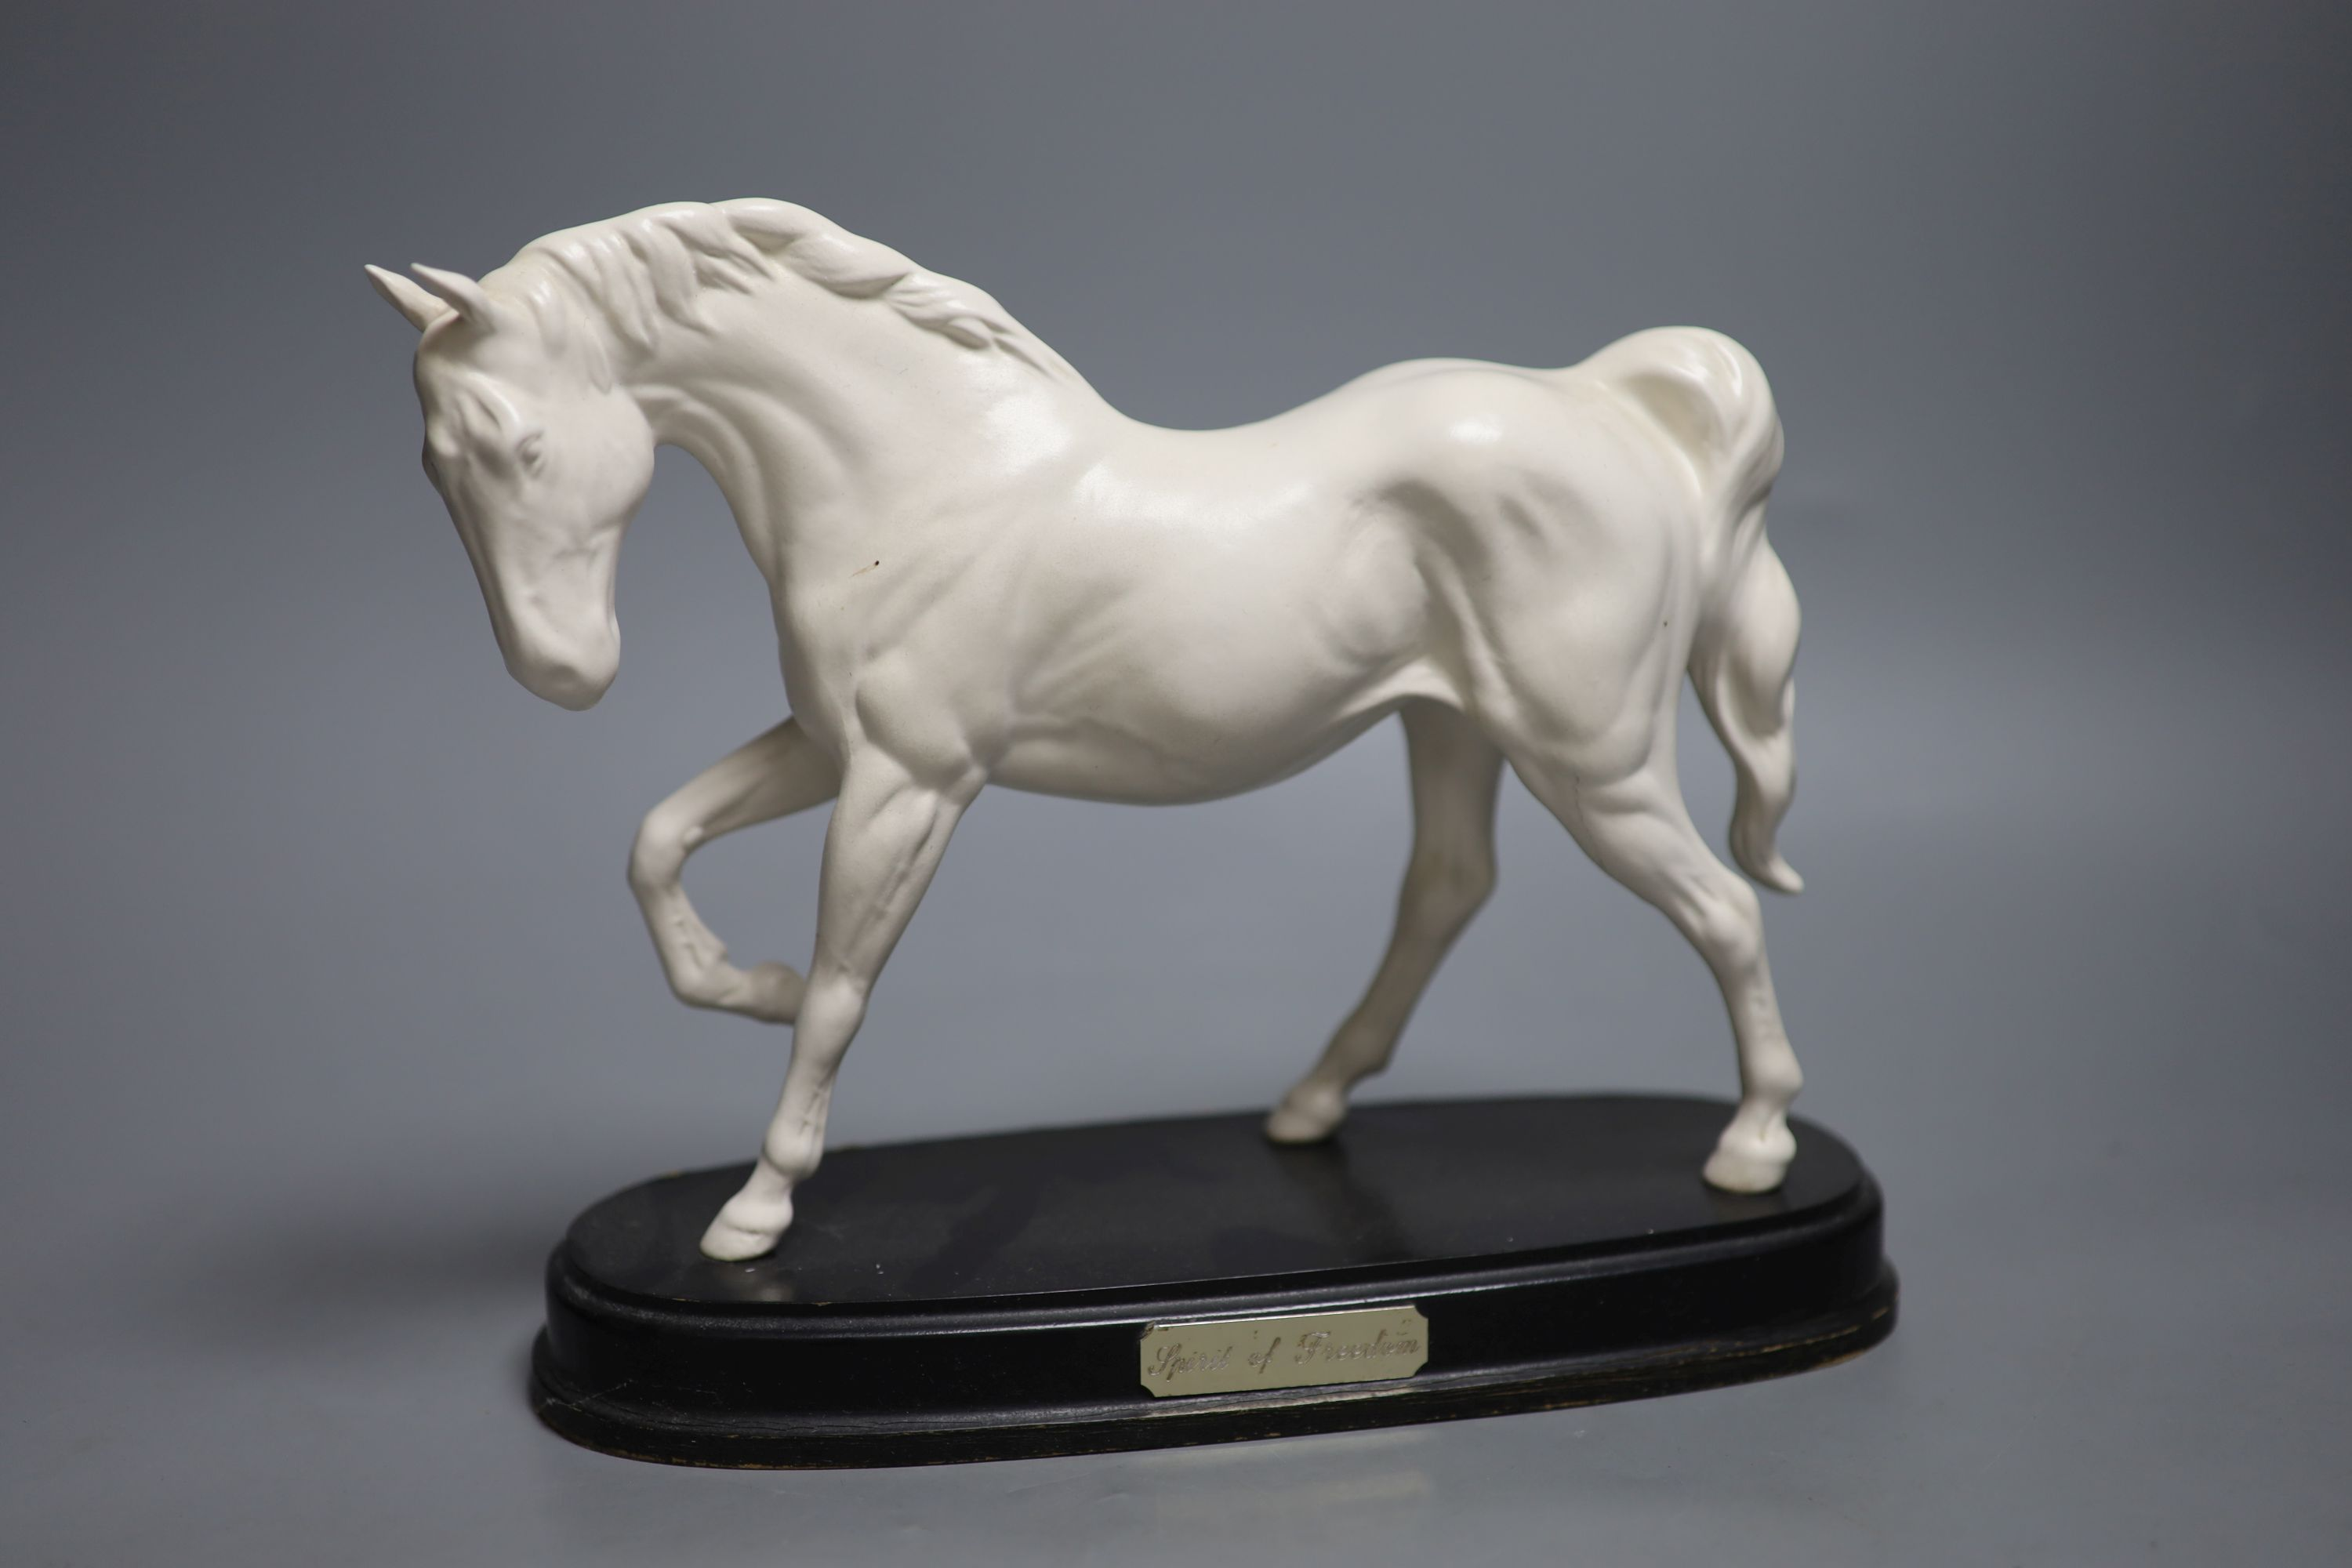 A Doulton silicon Lambeth planter, A Royal Doulton 'Spirit of Freedom' horse and a figural - Image 7 of 13